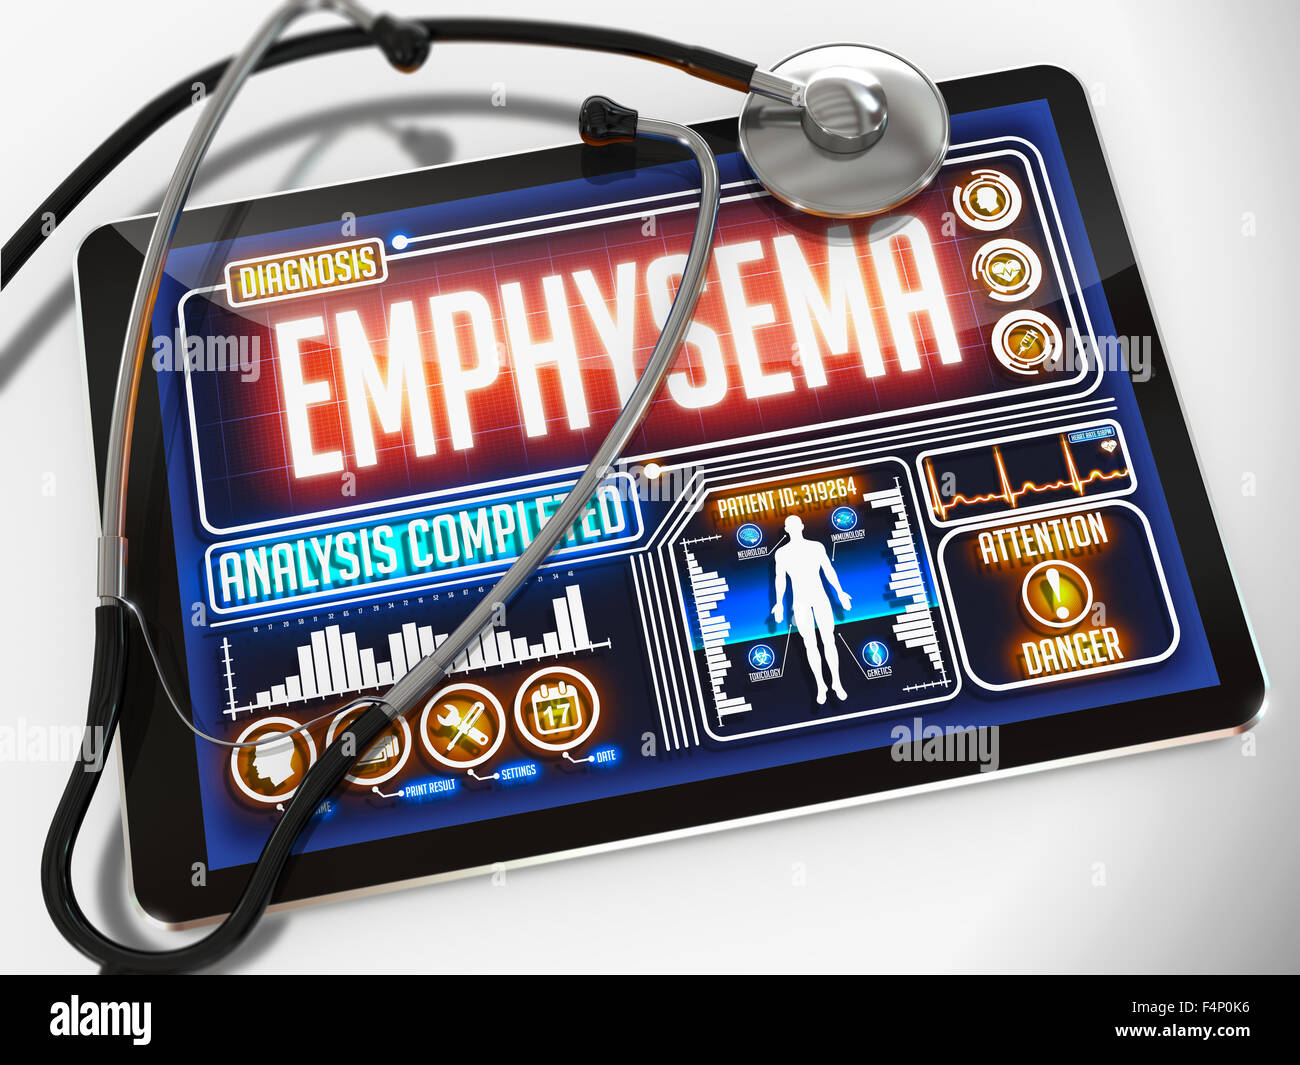 Emphysema - Diagnosis on the Display of Medical Tablet and a Black Stethoscope on White Background. - Stock Image